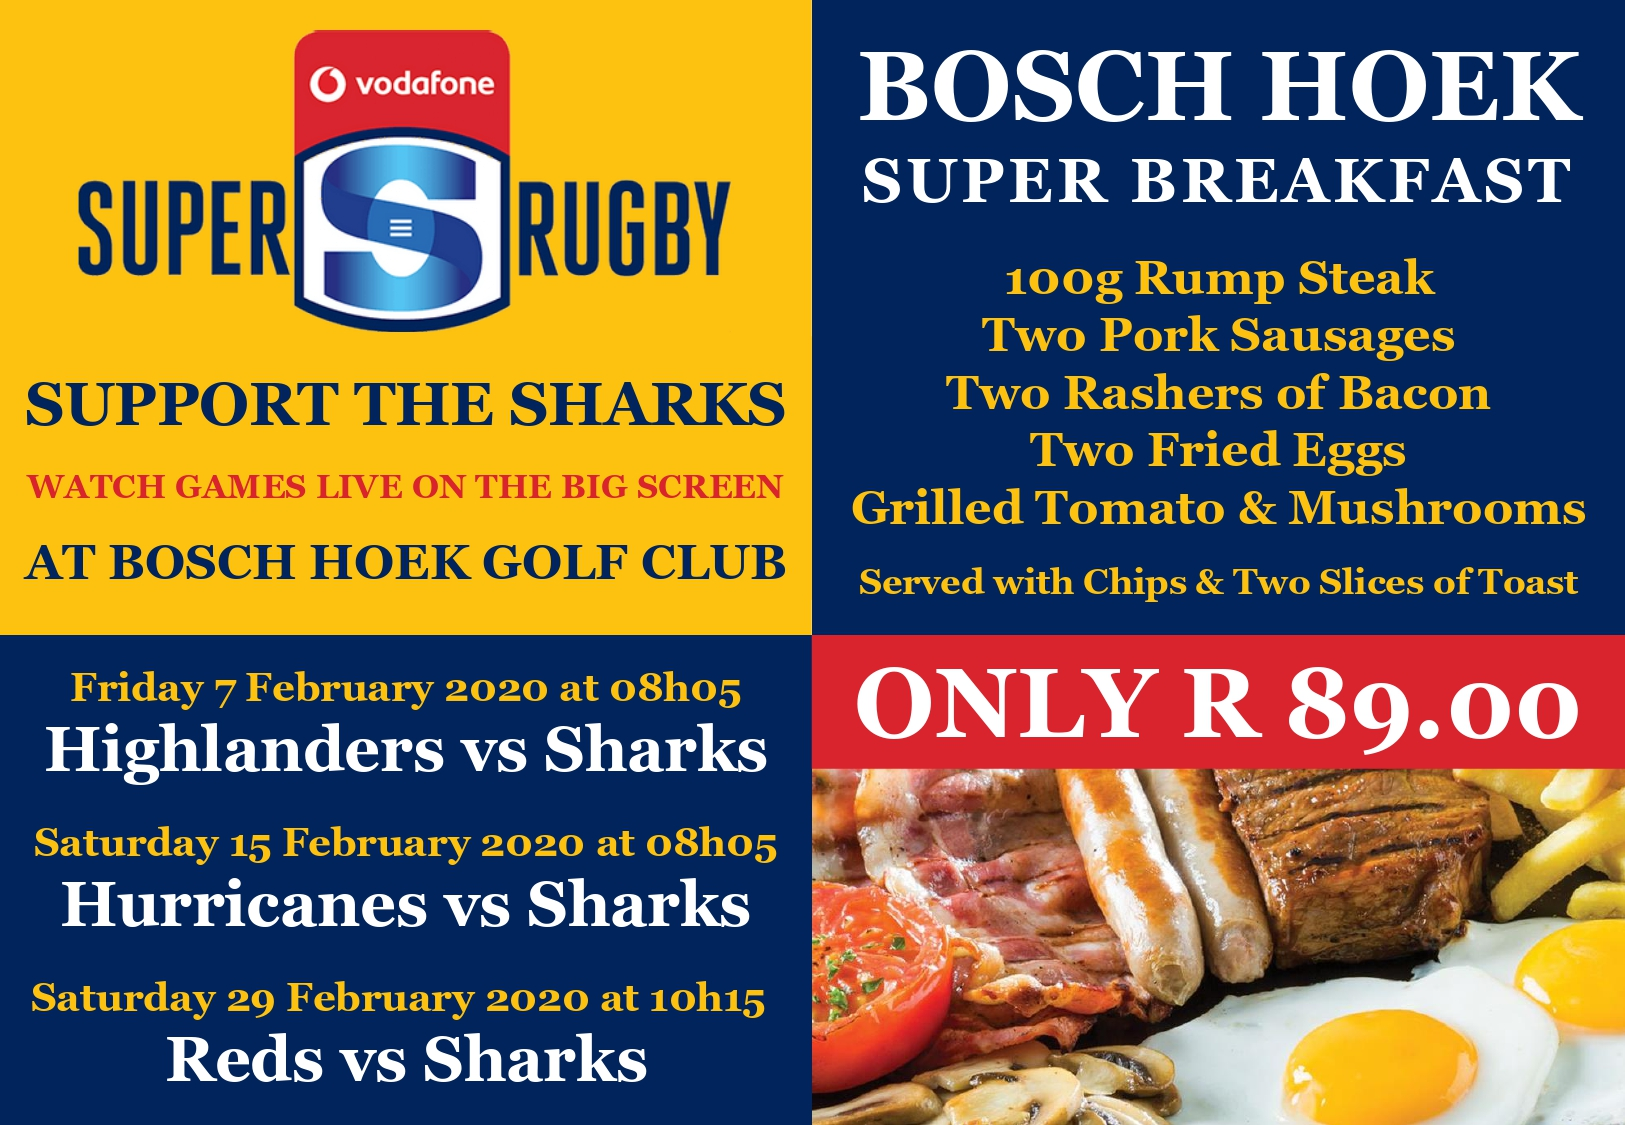 2020 Super Rugby - Breakfast Special_page-0001